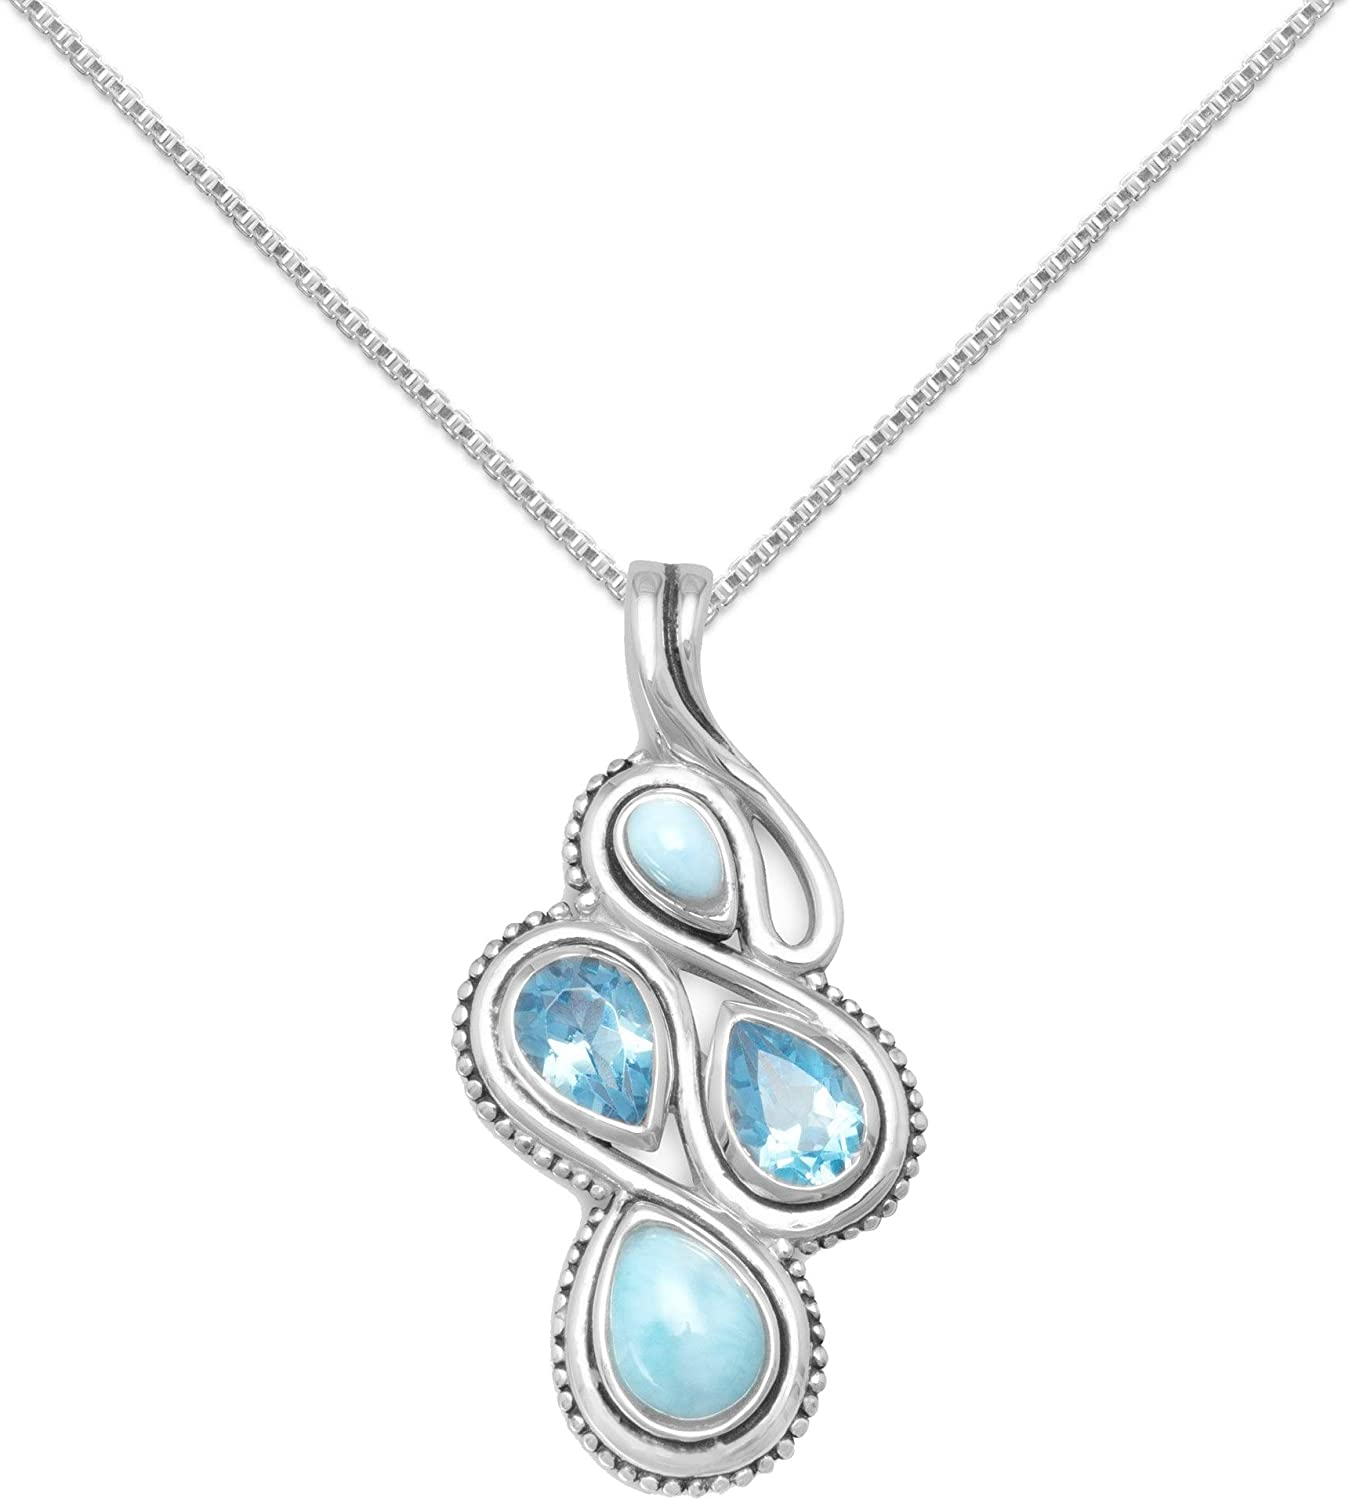 Precious Stars Jewelry Sterling Silver Round-Shape Blue Larimar Pendant with 1.5mm Box Chain